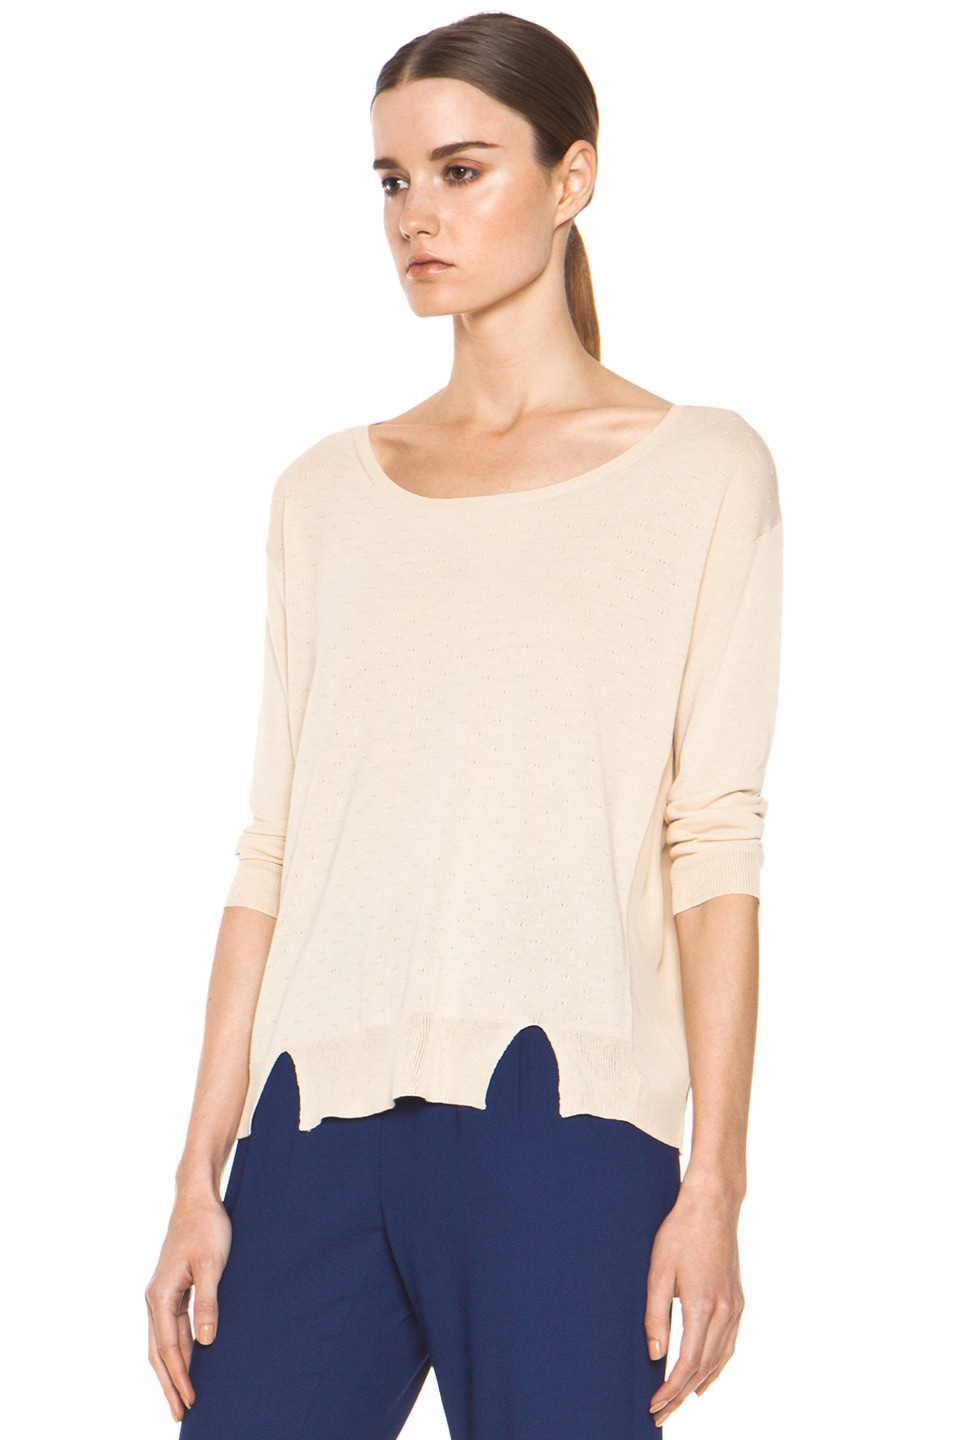 Image 2 of Girl. by Band of Outsiders Malibu Basic Sweater in Nude